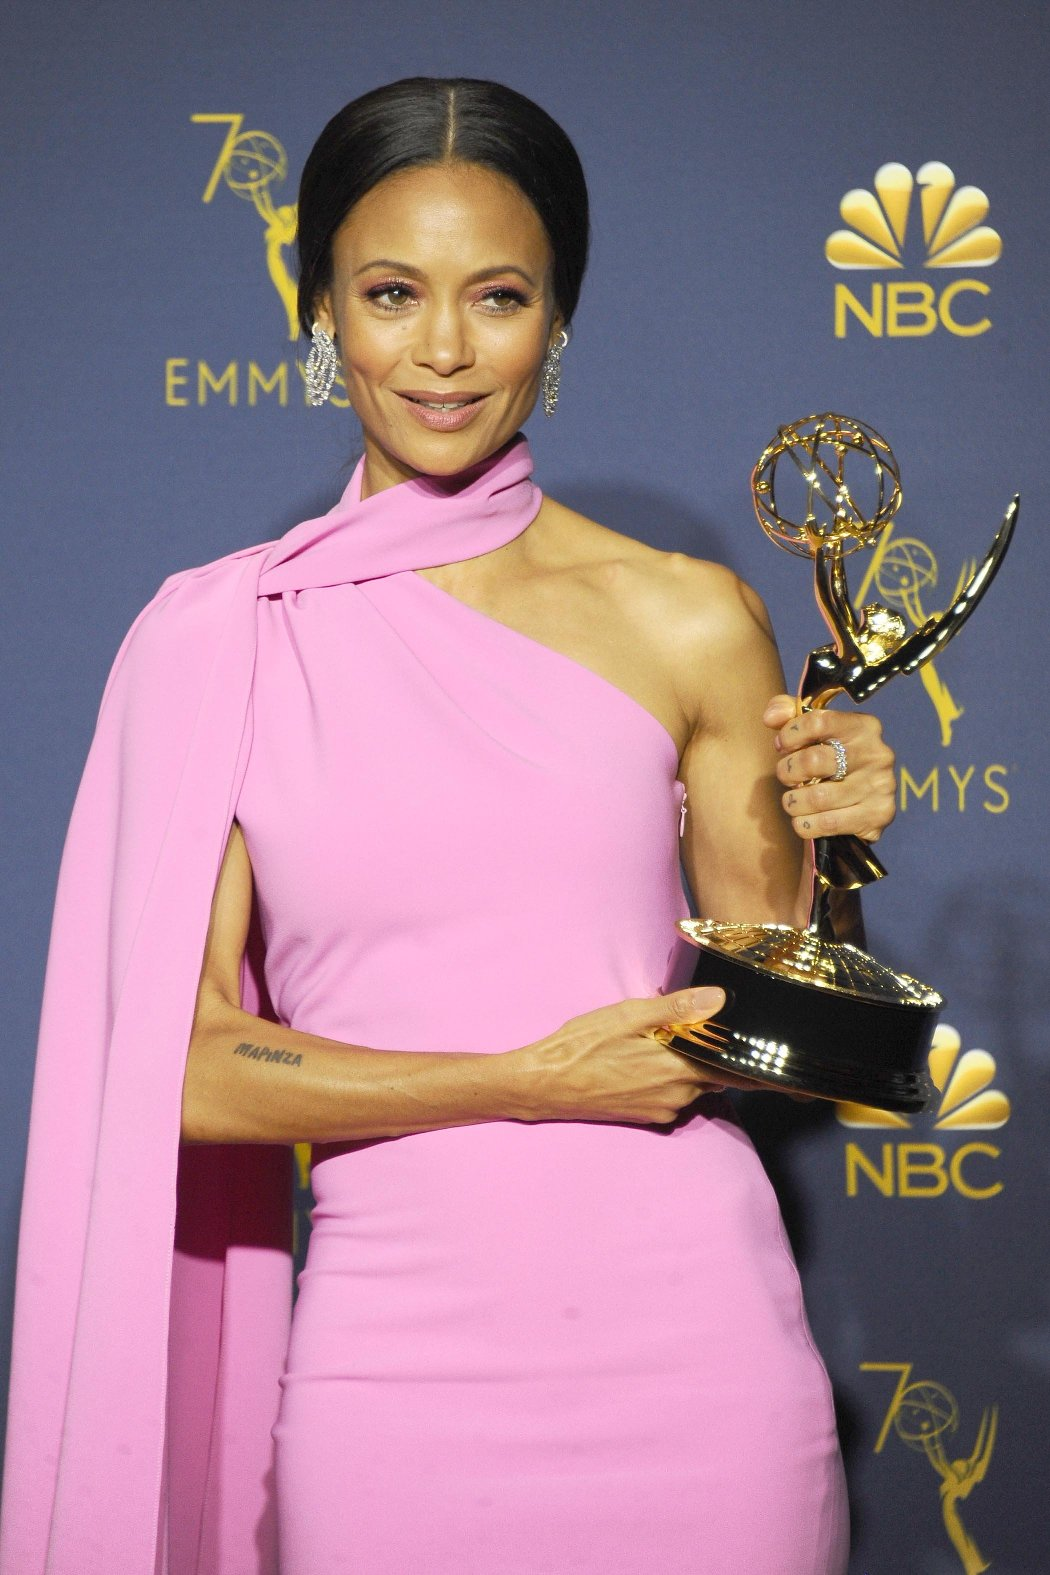 , Los Angeles, CA -20180917 - The 70th Primetime Emmy Awards Press Room, at Microsoft Theater  -PICTURED: Thandie Newton -, Image: 387166897, License: Rights-managed, Restrictions: , Model Release: no, Credit line: Profimedia, INSTAR Images